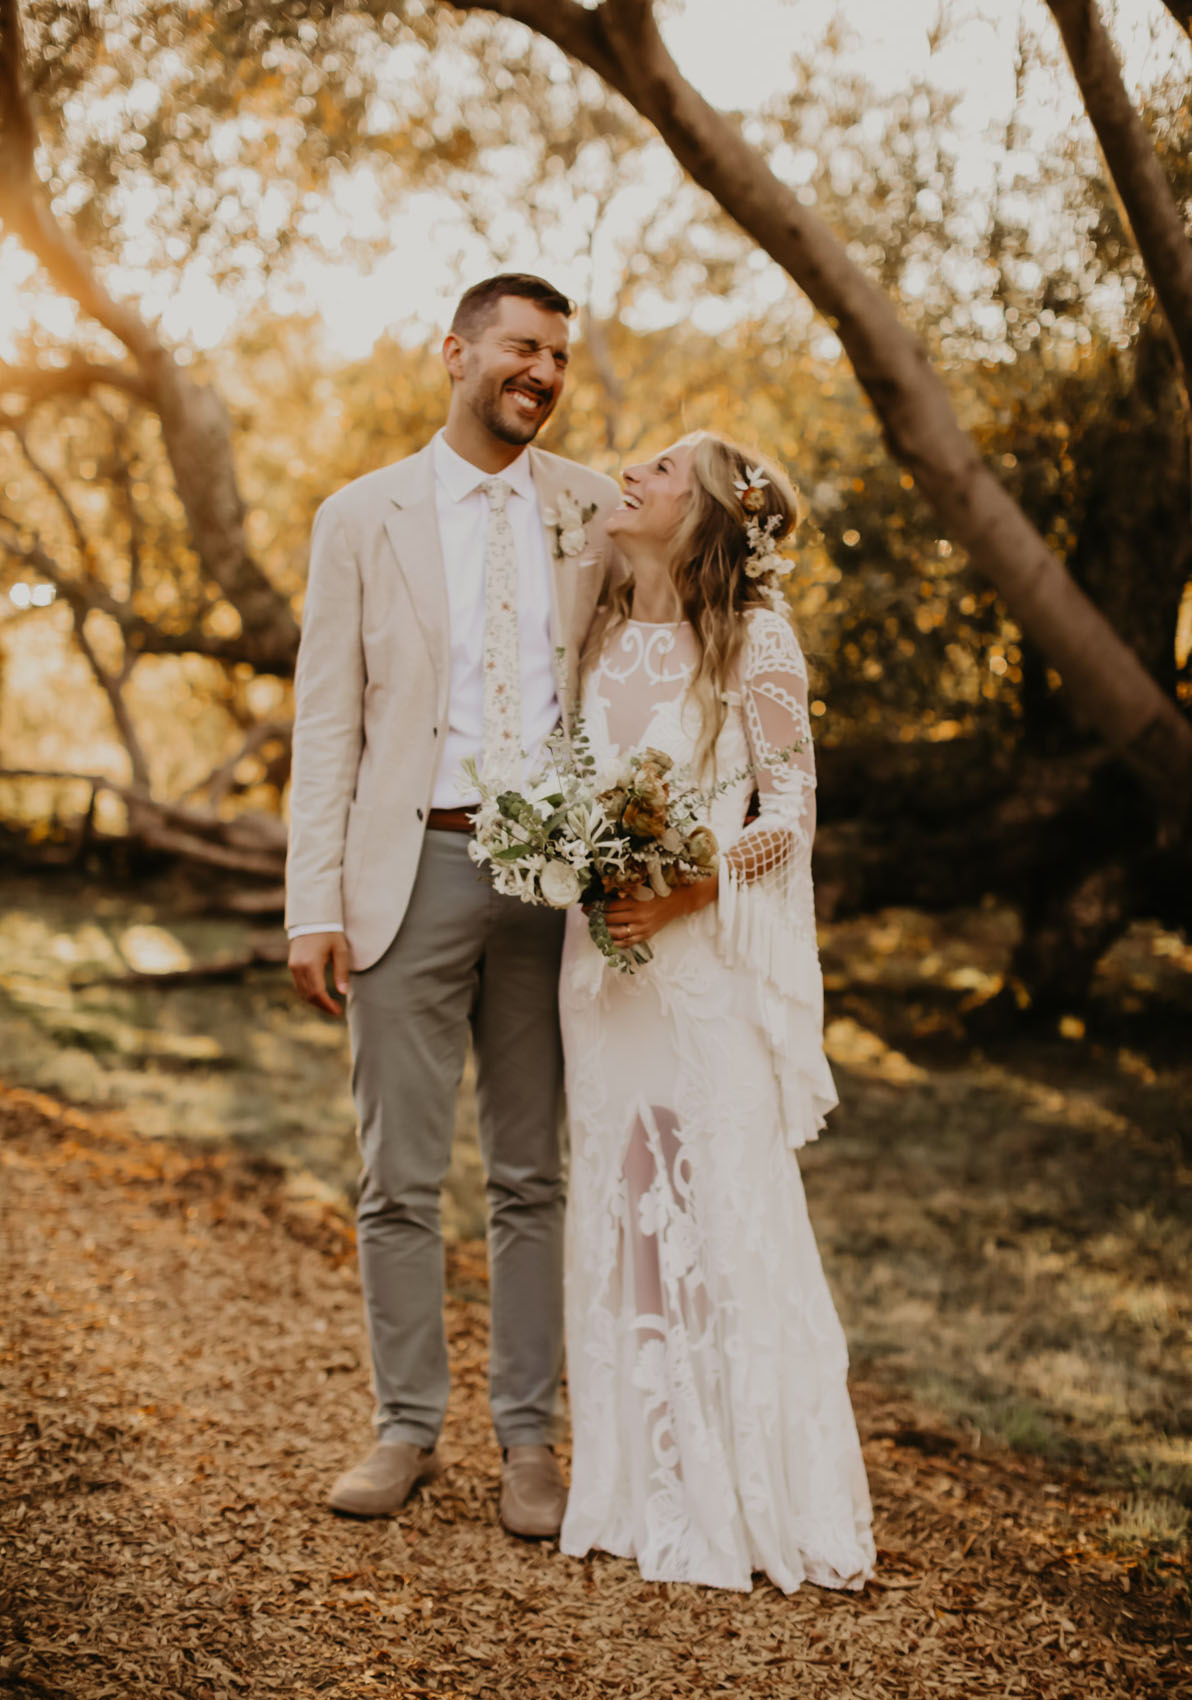 Relaxed Outdoor Wedding Vibes With 1970?s Inspiration + Dried Florals